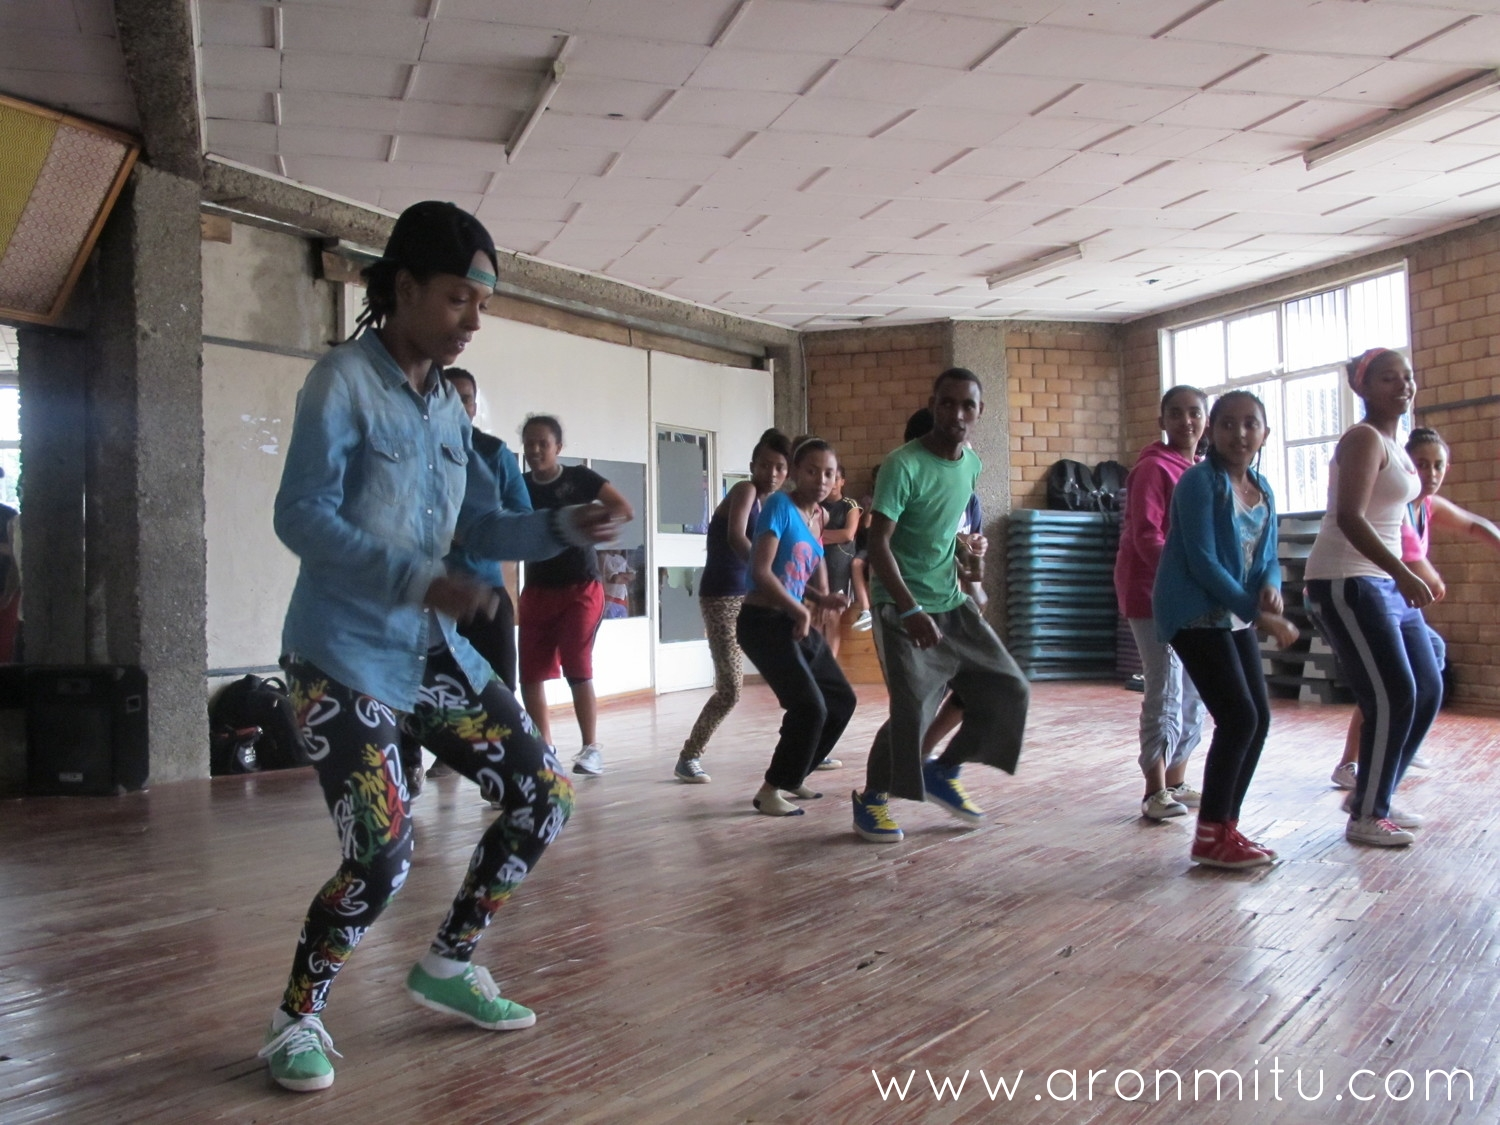 "Aron""MITU"" Dancehall Workshop Addis Abeba Ethiopia 2014"